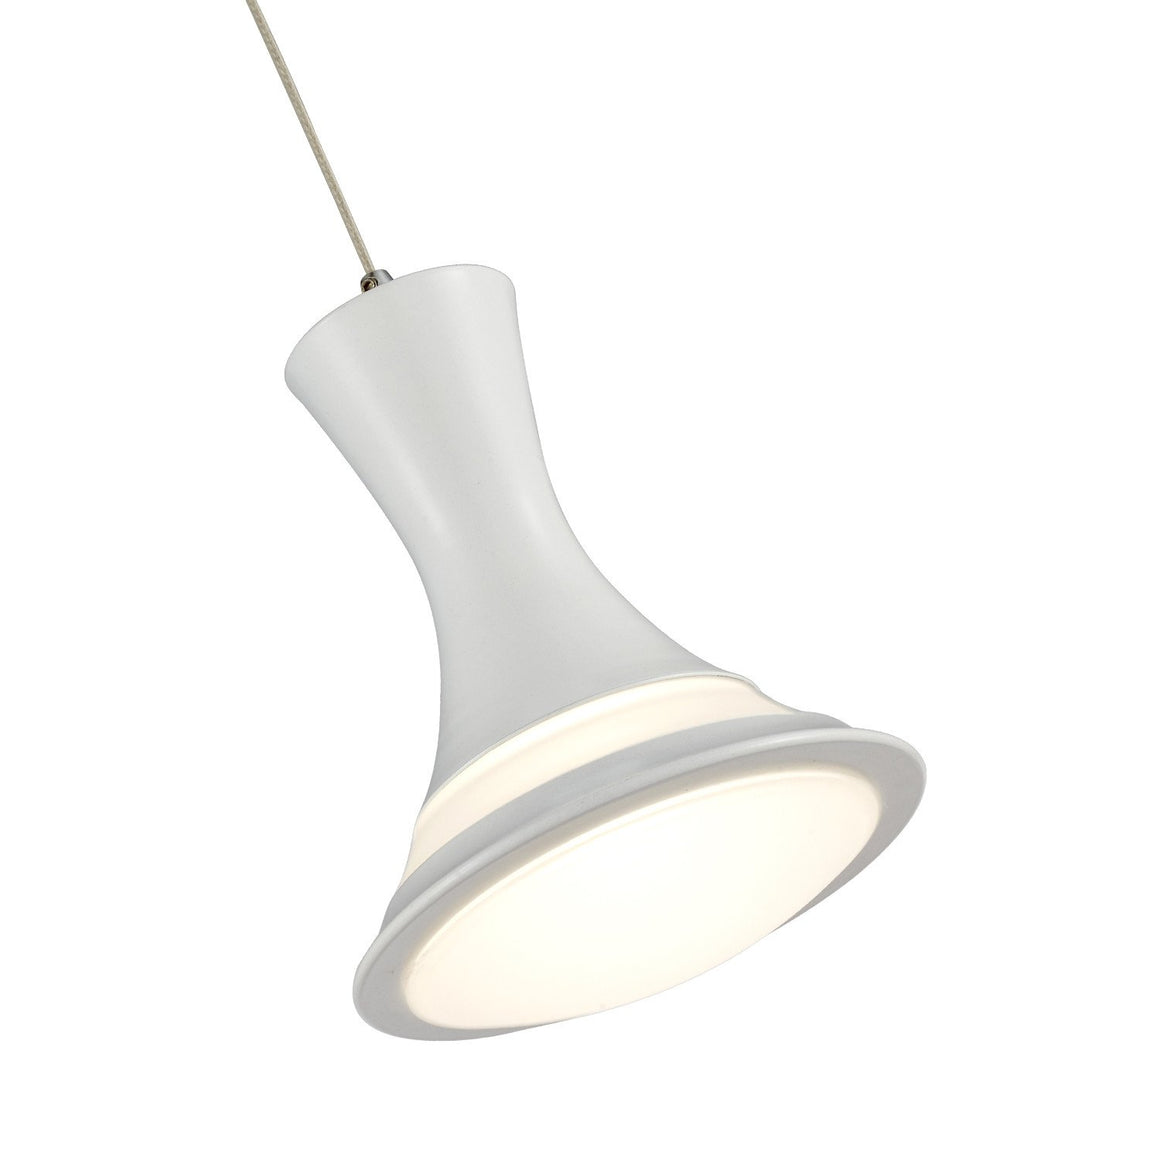 Ohr Lighting® LED Pendant Light -5 Pendants, White/Chrome Canopy